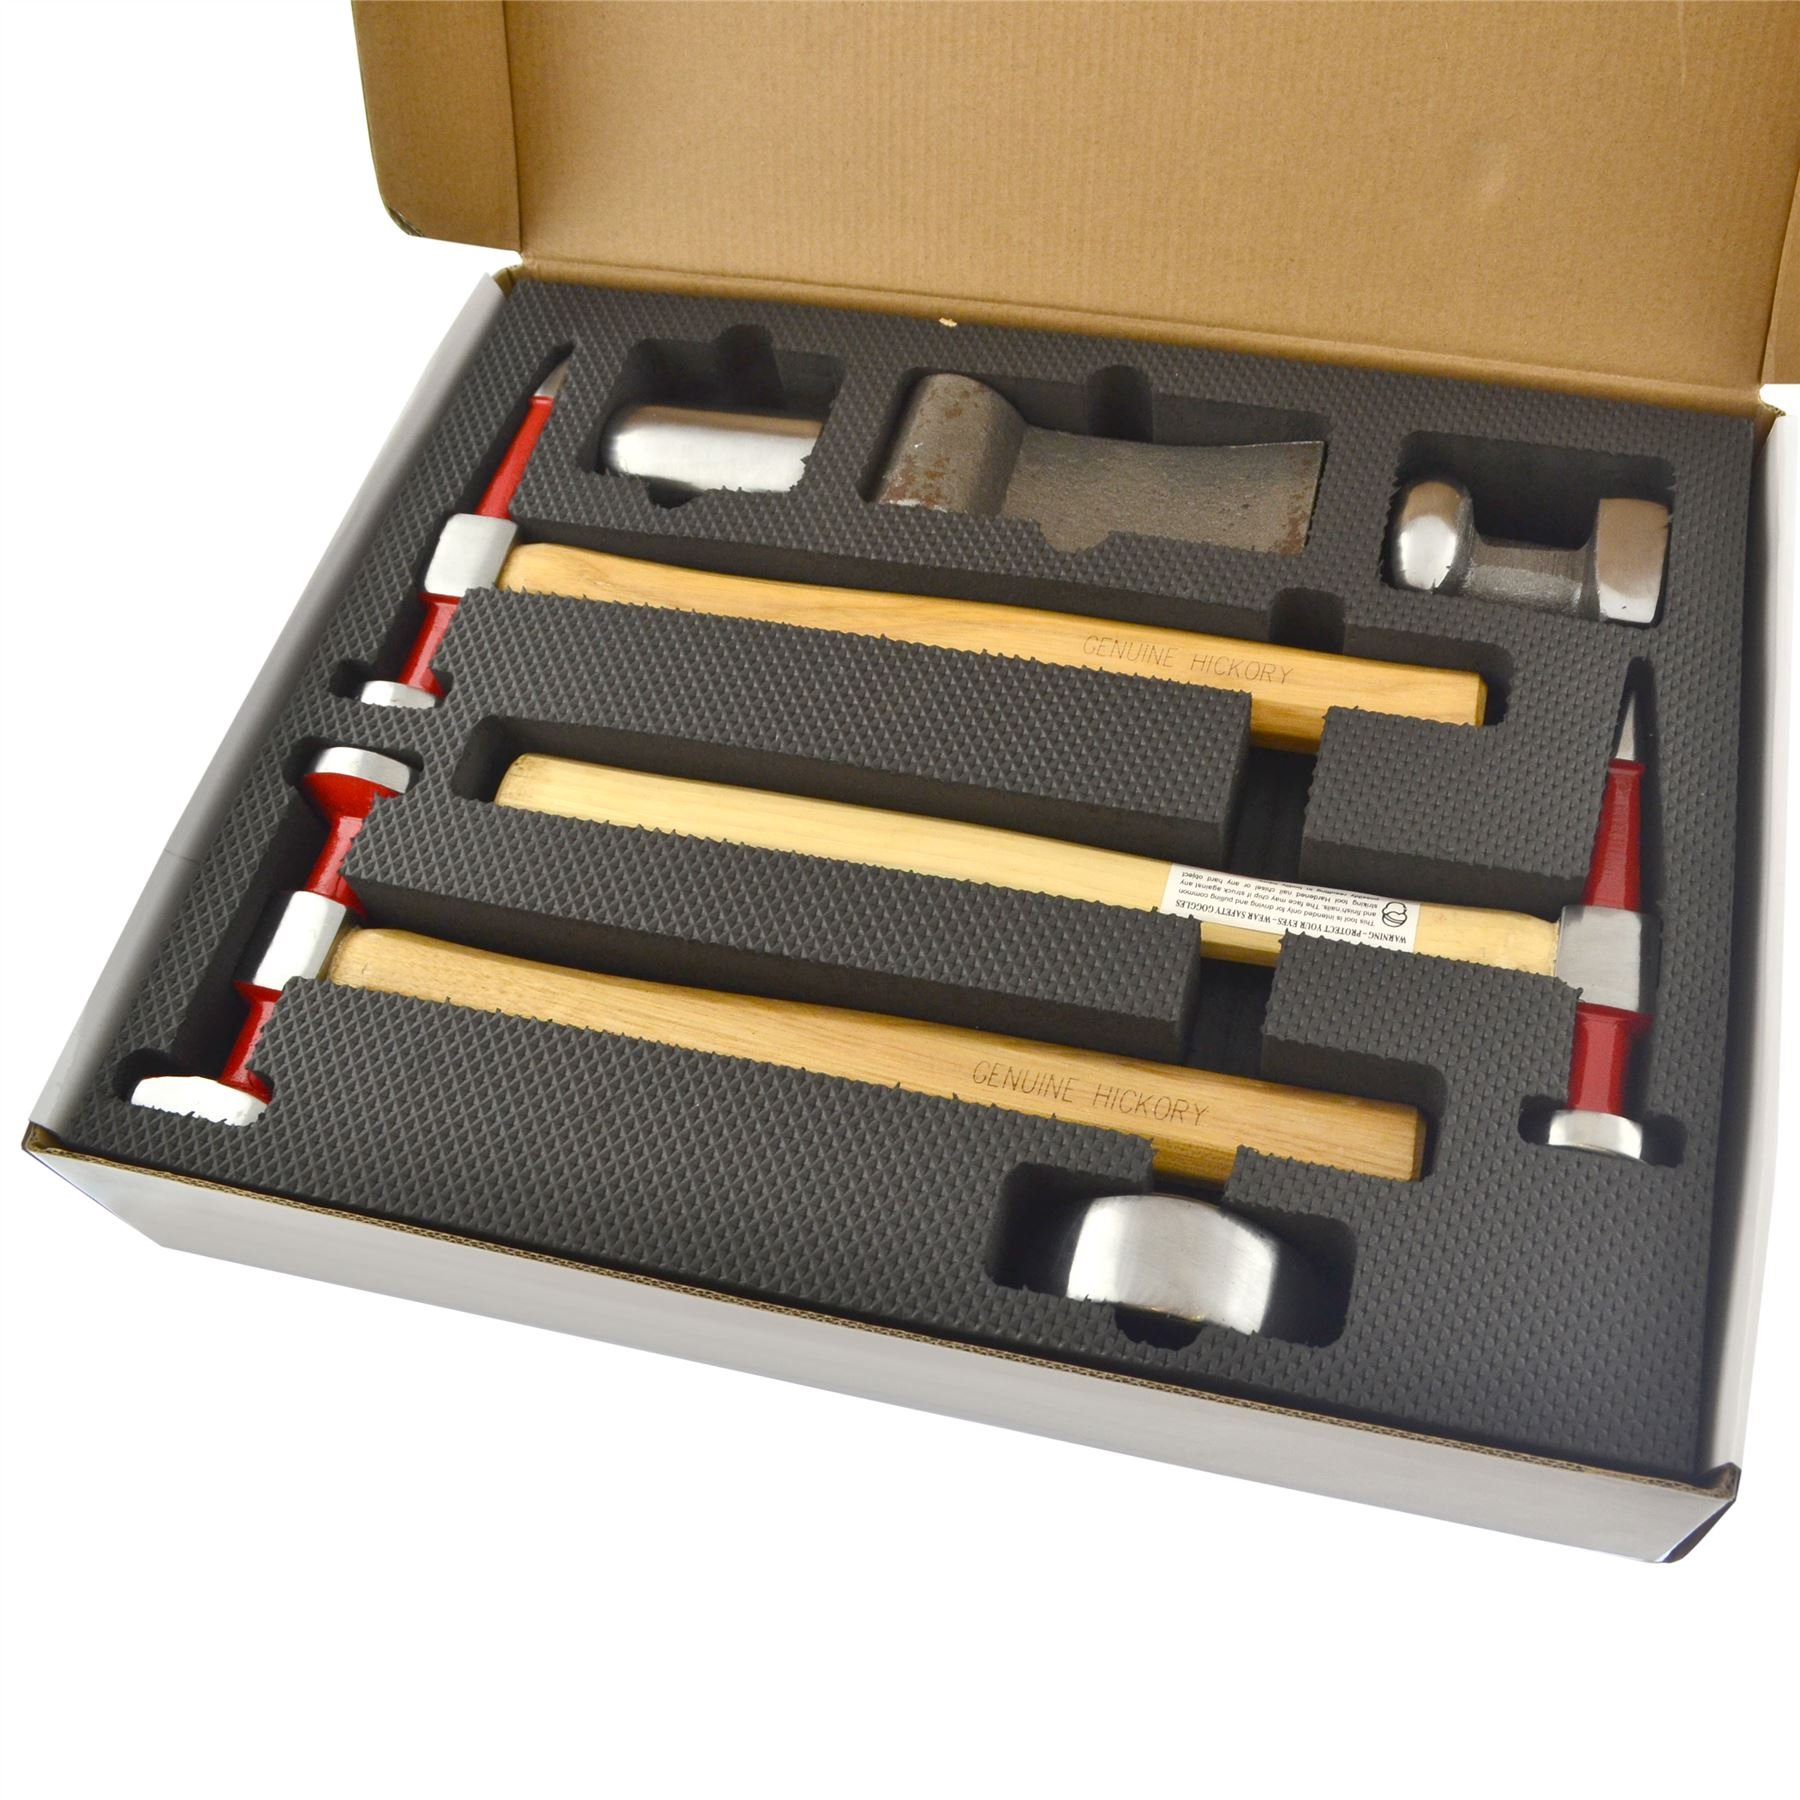 AB Tools-Neilsen Auto Body Repair Kit Panel Beating Hickory Hammers Dollies Shrinking 7pc AN021 by AB Tools-Neilsen (Image #2)